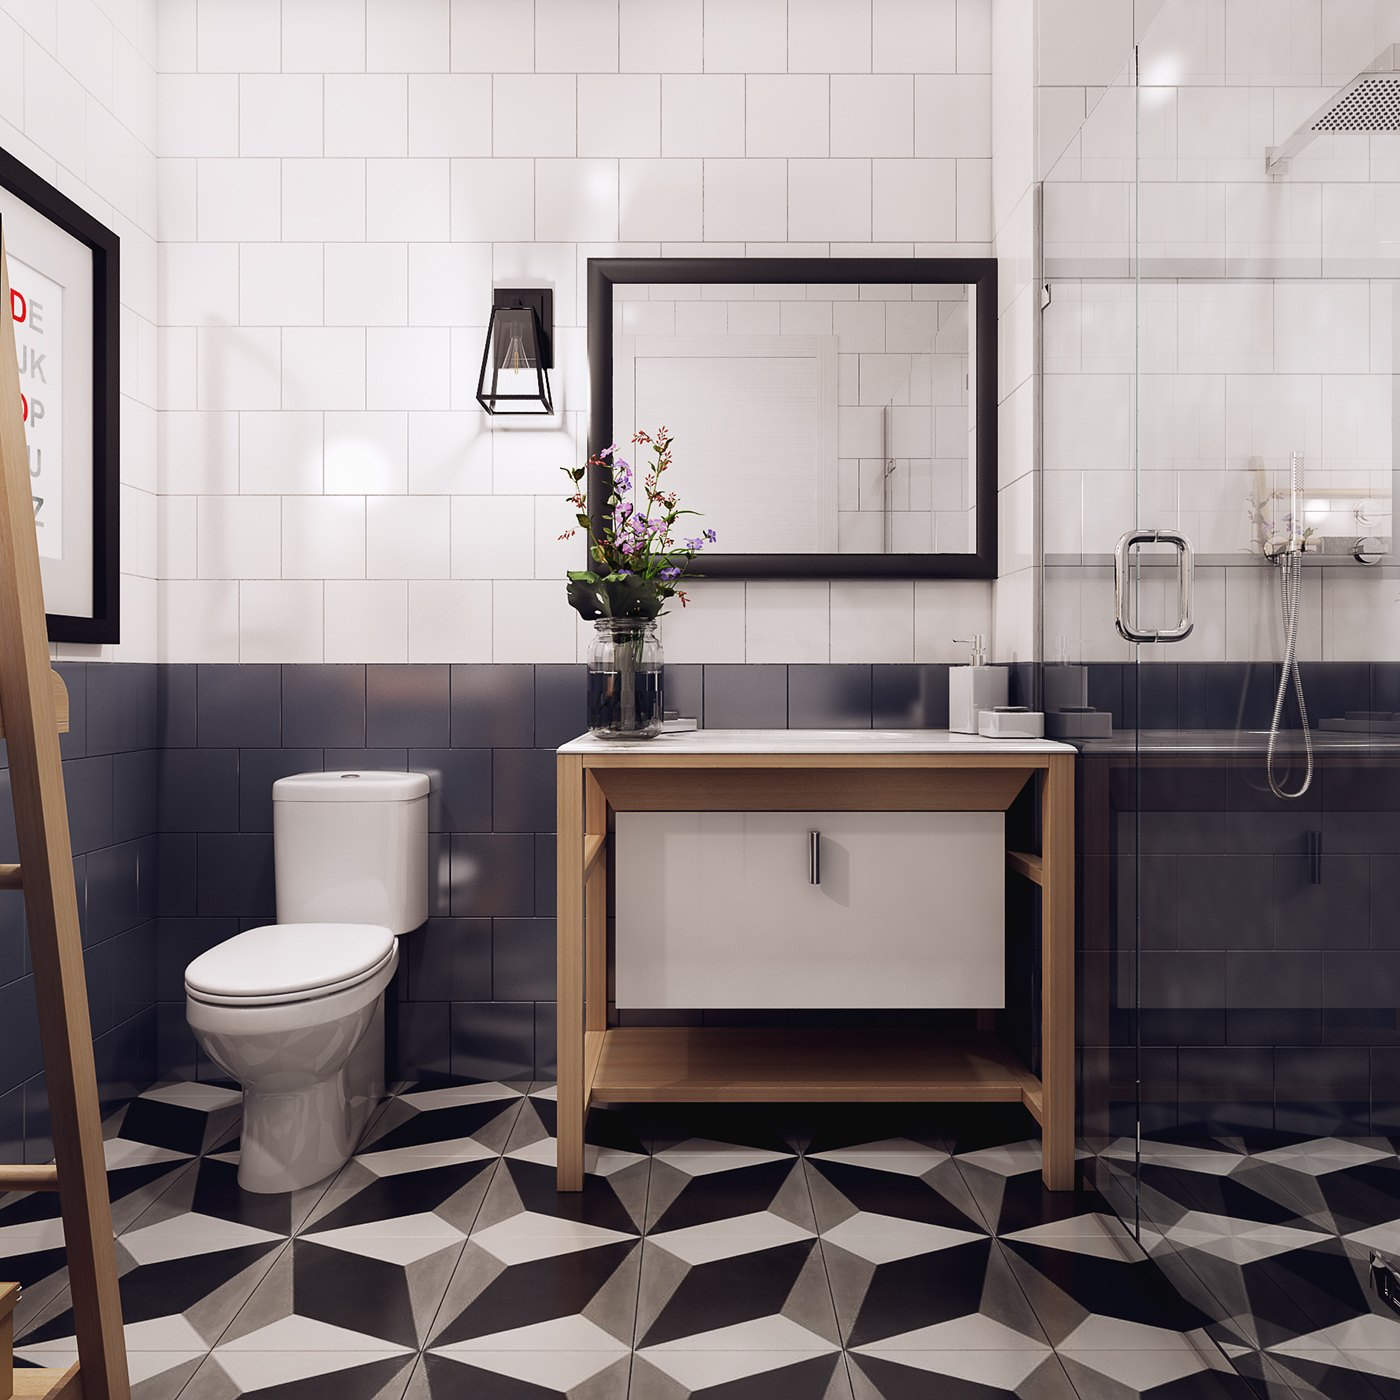 Bathroom Decor Designs Of 10 Stunning Apartments That Show Off The Beauty Of Nordic